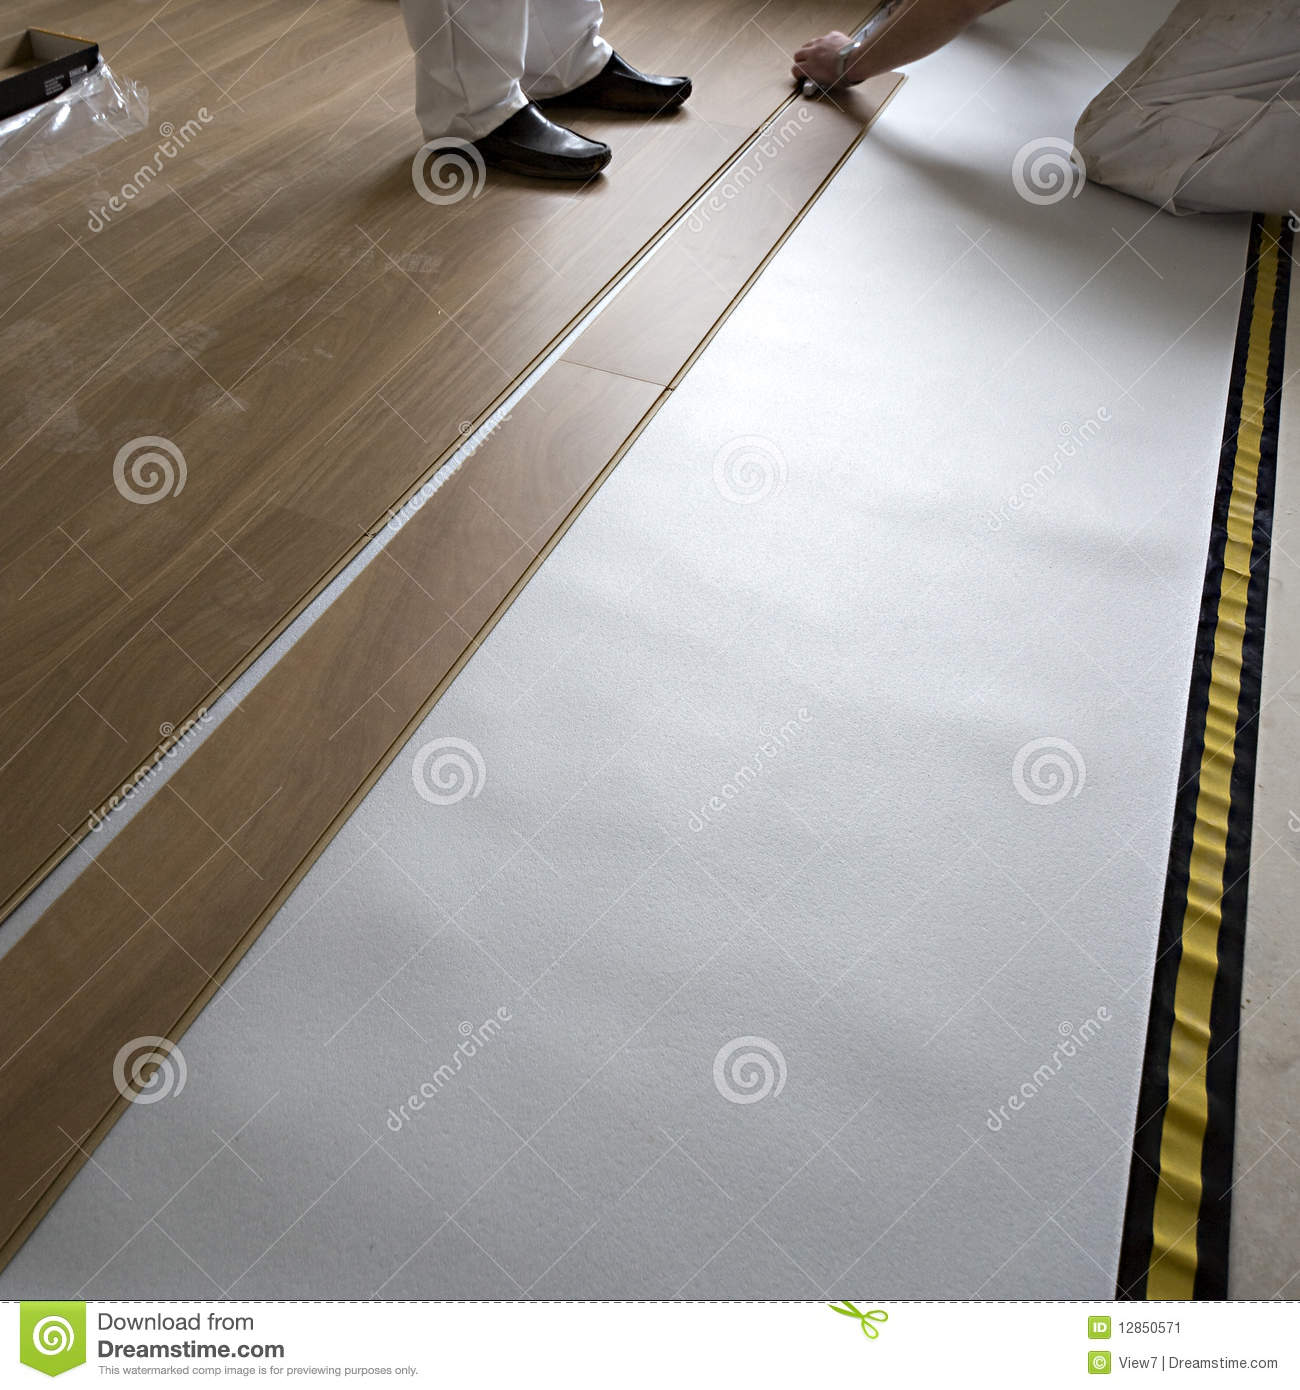 People laying wooden floor stock image image 12850571 for Floor someone